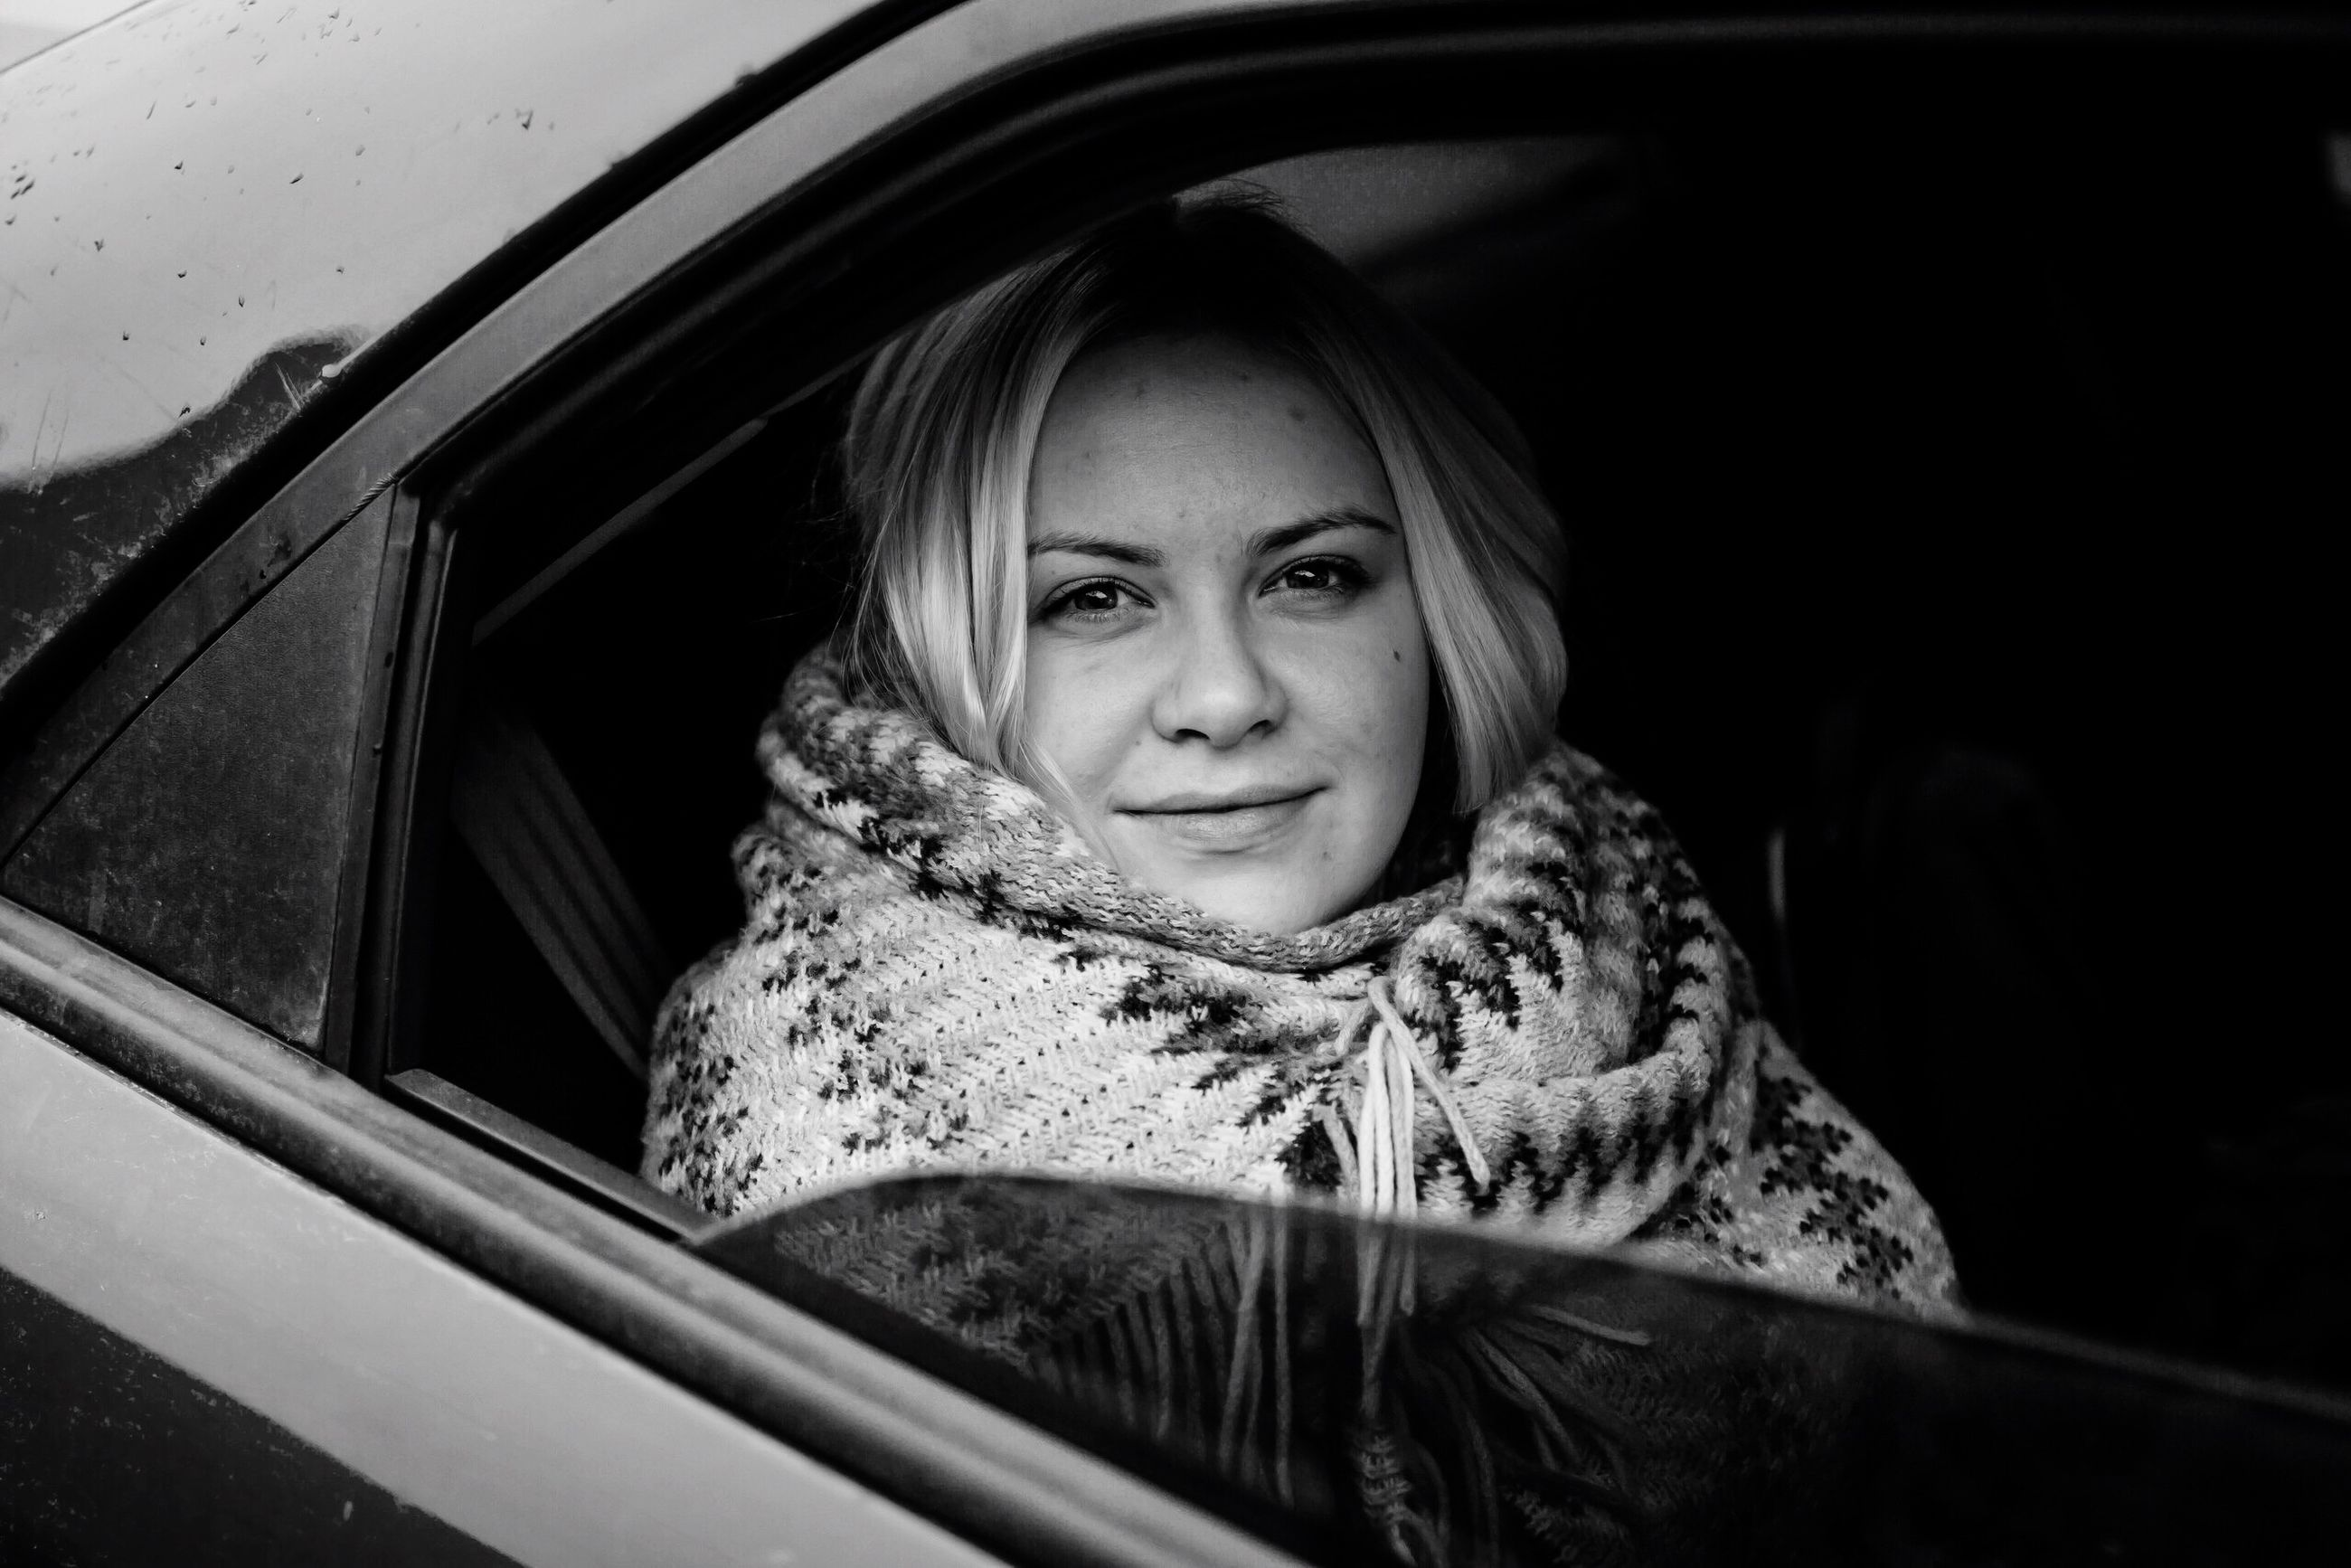 car, transportation, looking at camera, mode of transport, portrait, lifestyles, travel, land vehicle, car interior, headshot, beautiful woman, women, leisure activity, one person, young women, real people, one woman only, smiling, adult, only women, young adult, outdoors, day, adults only, people